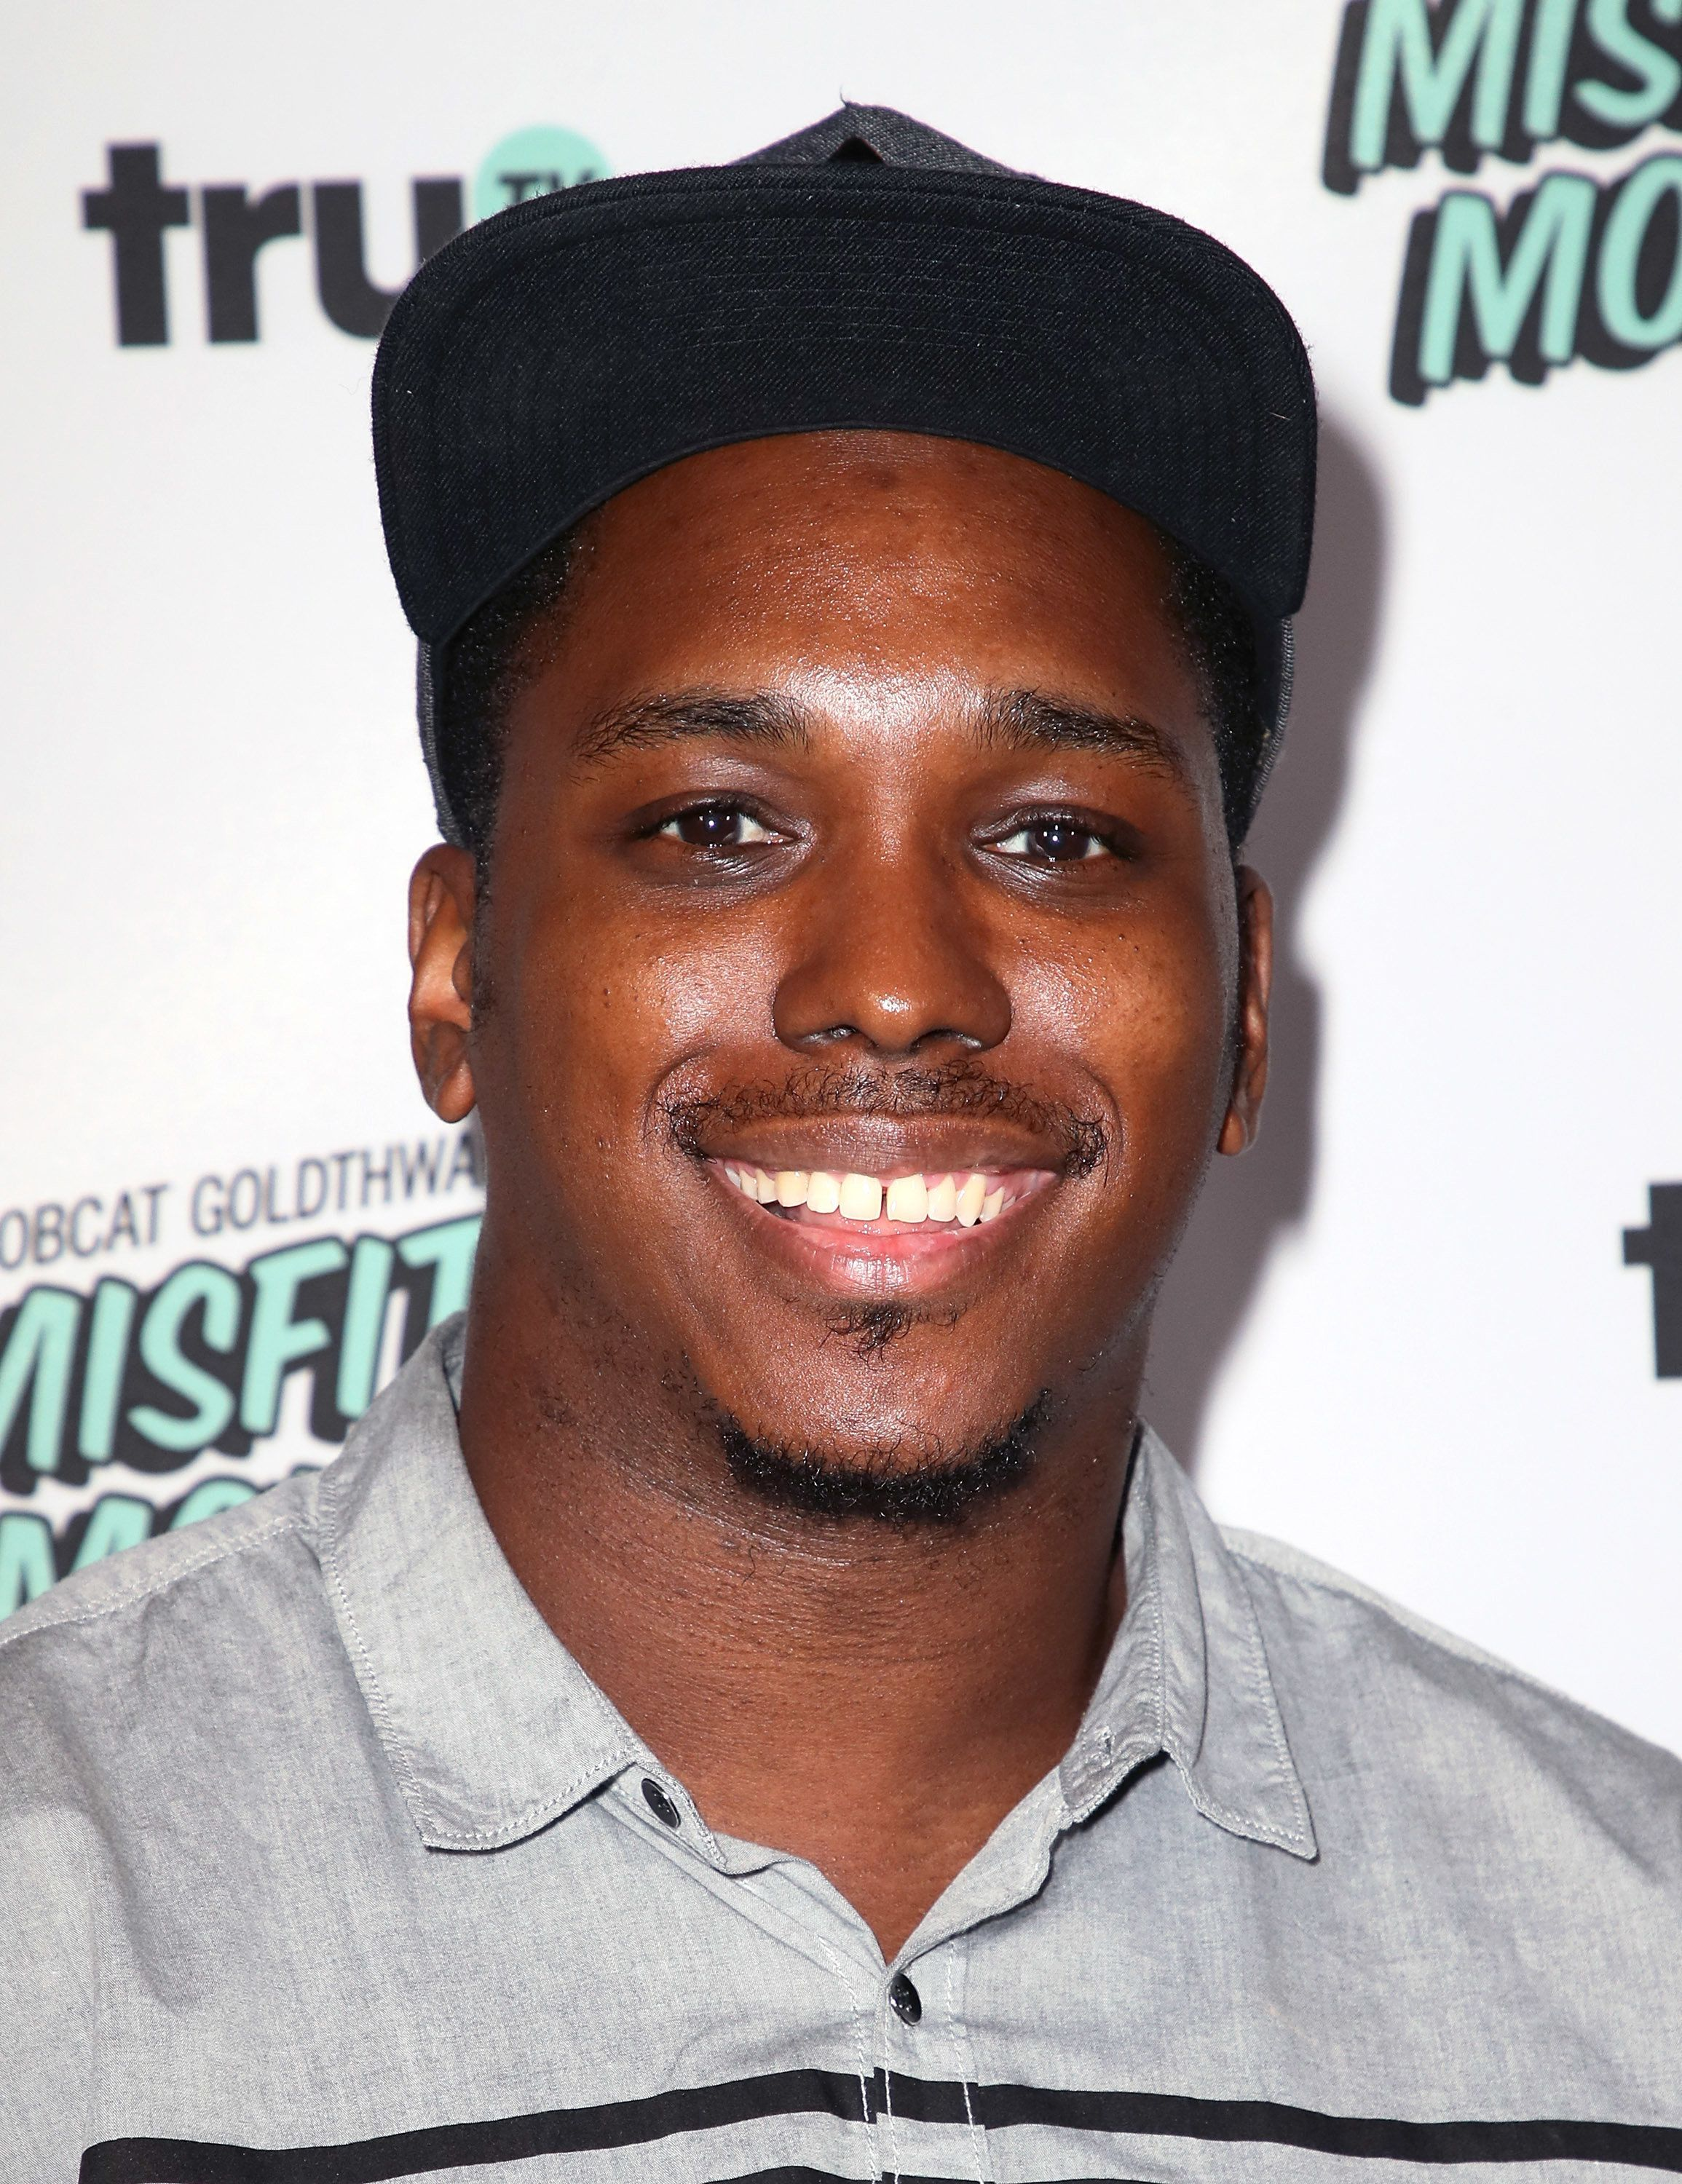 HOLLYWOOD, CA - JULY 11:  Comedian Kevin Barnett attends the premiere of truTV's 'Bobcat Goldthwait's Misfits & Monsters' at the Hollywood Roosevelt Hotel on July 11, 2018 in Hollywood, California.  (Photo by David Livingston/Getty Images)